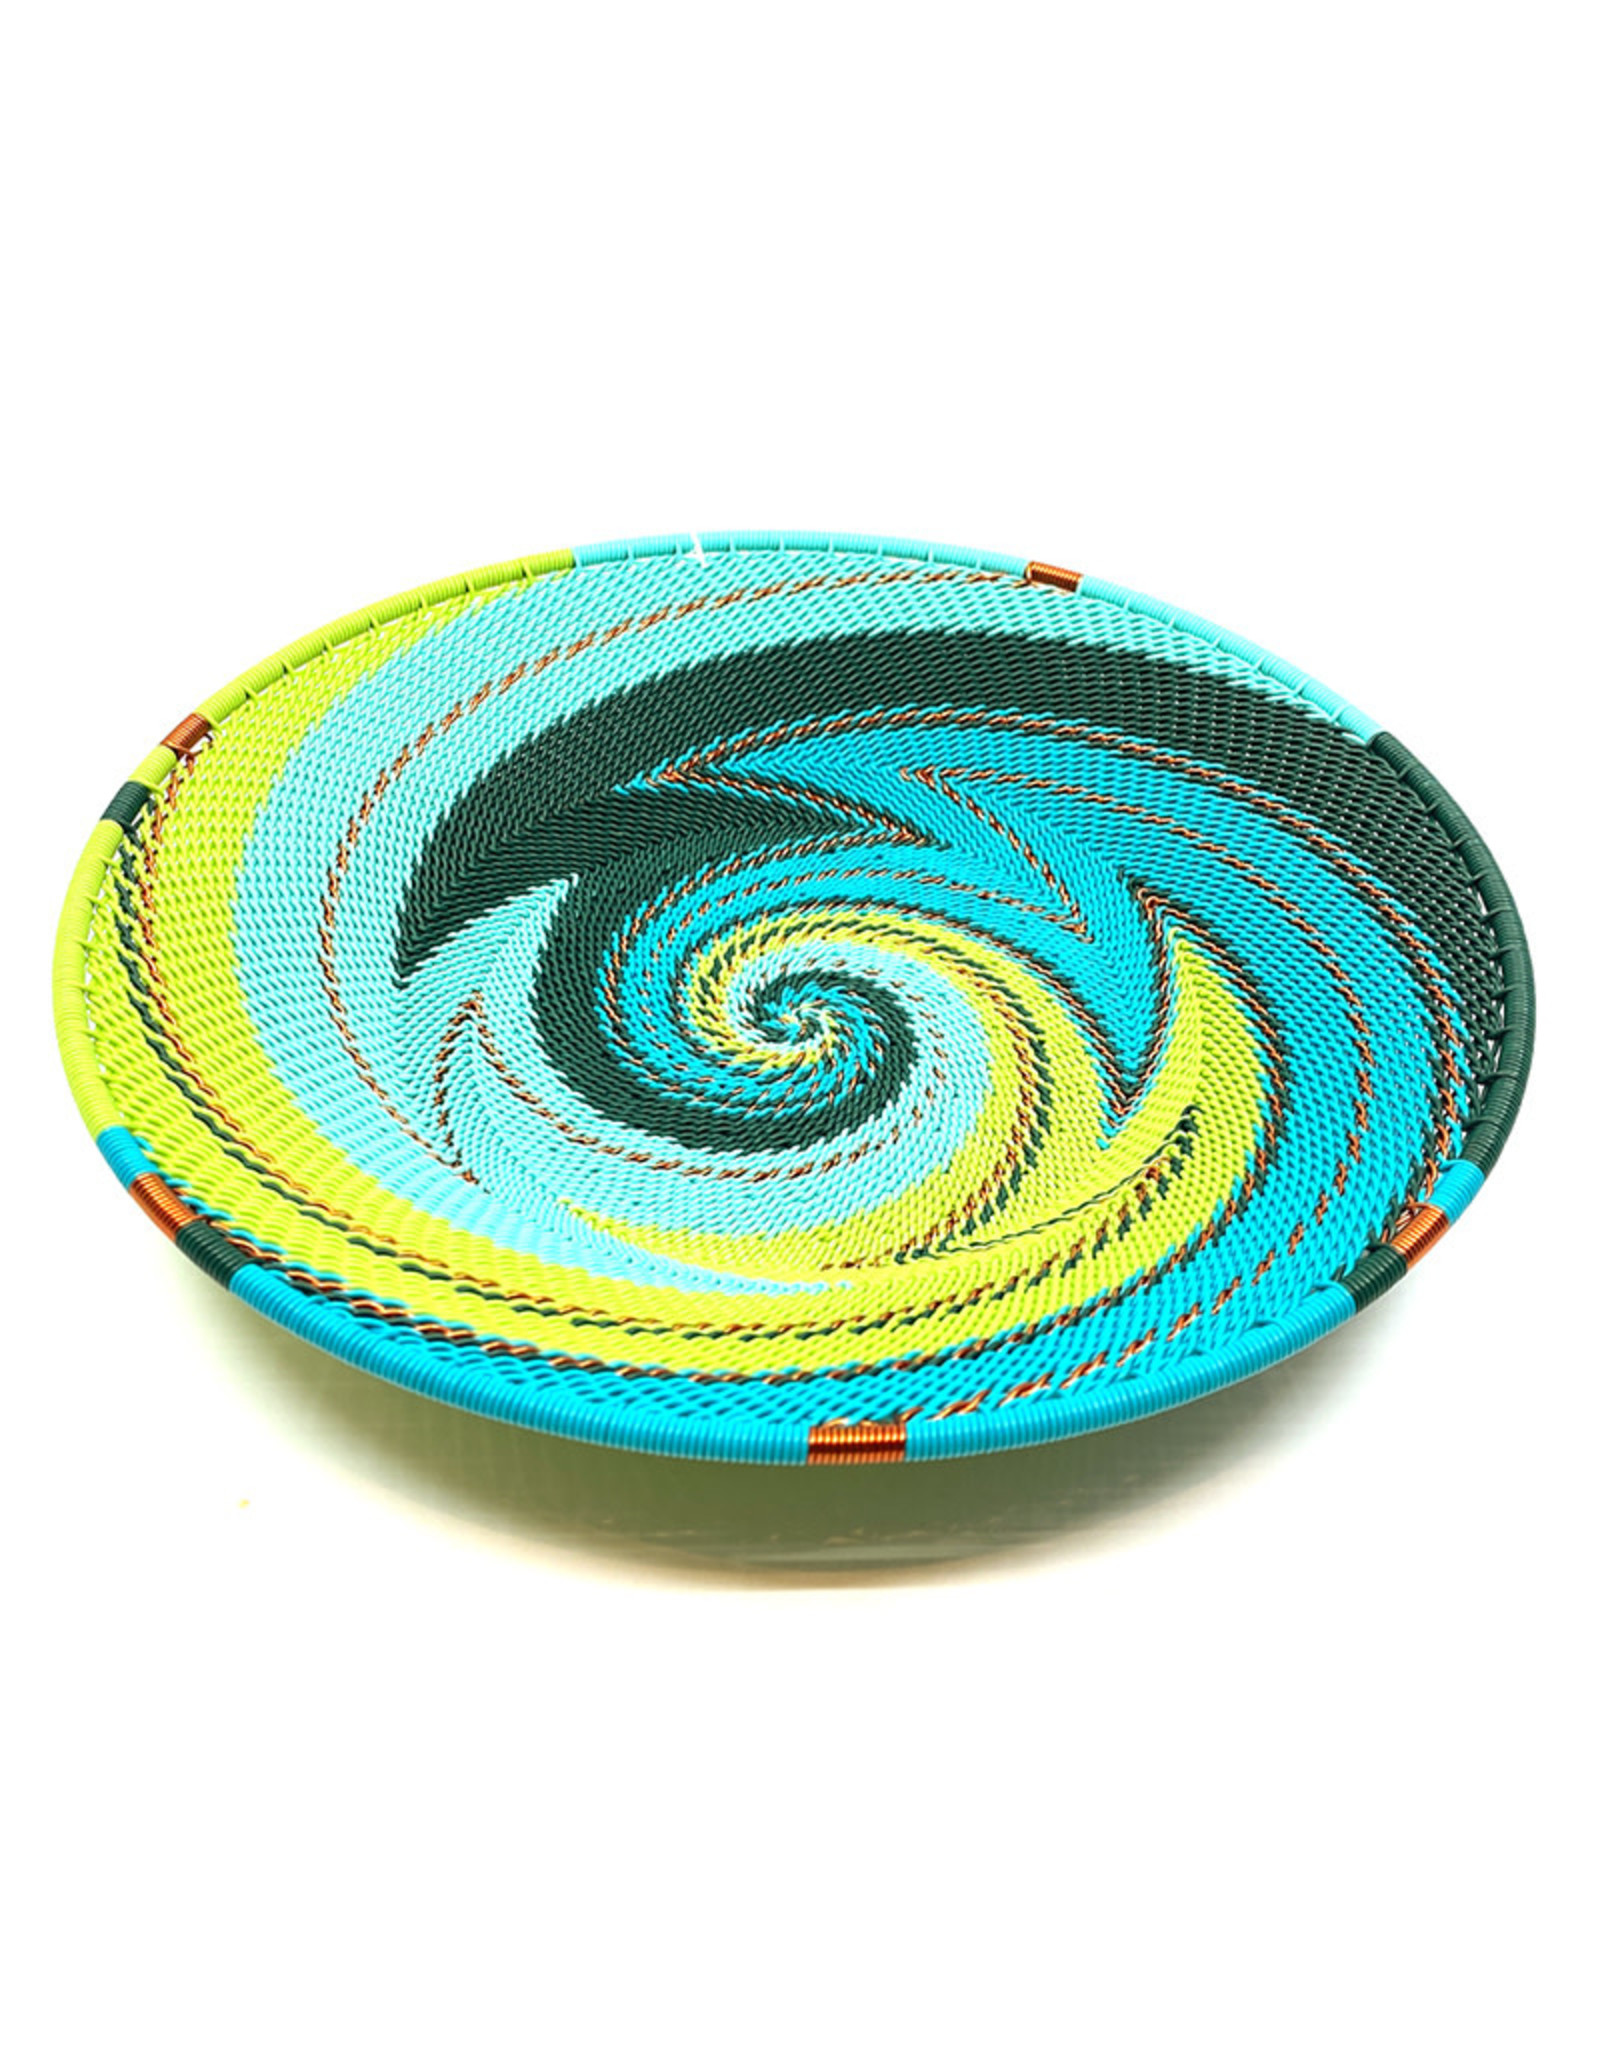 BASKETS OF AFRICA SMALL TEAL PLATTER